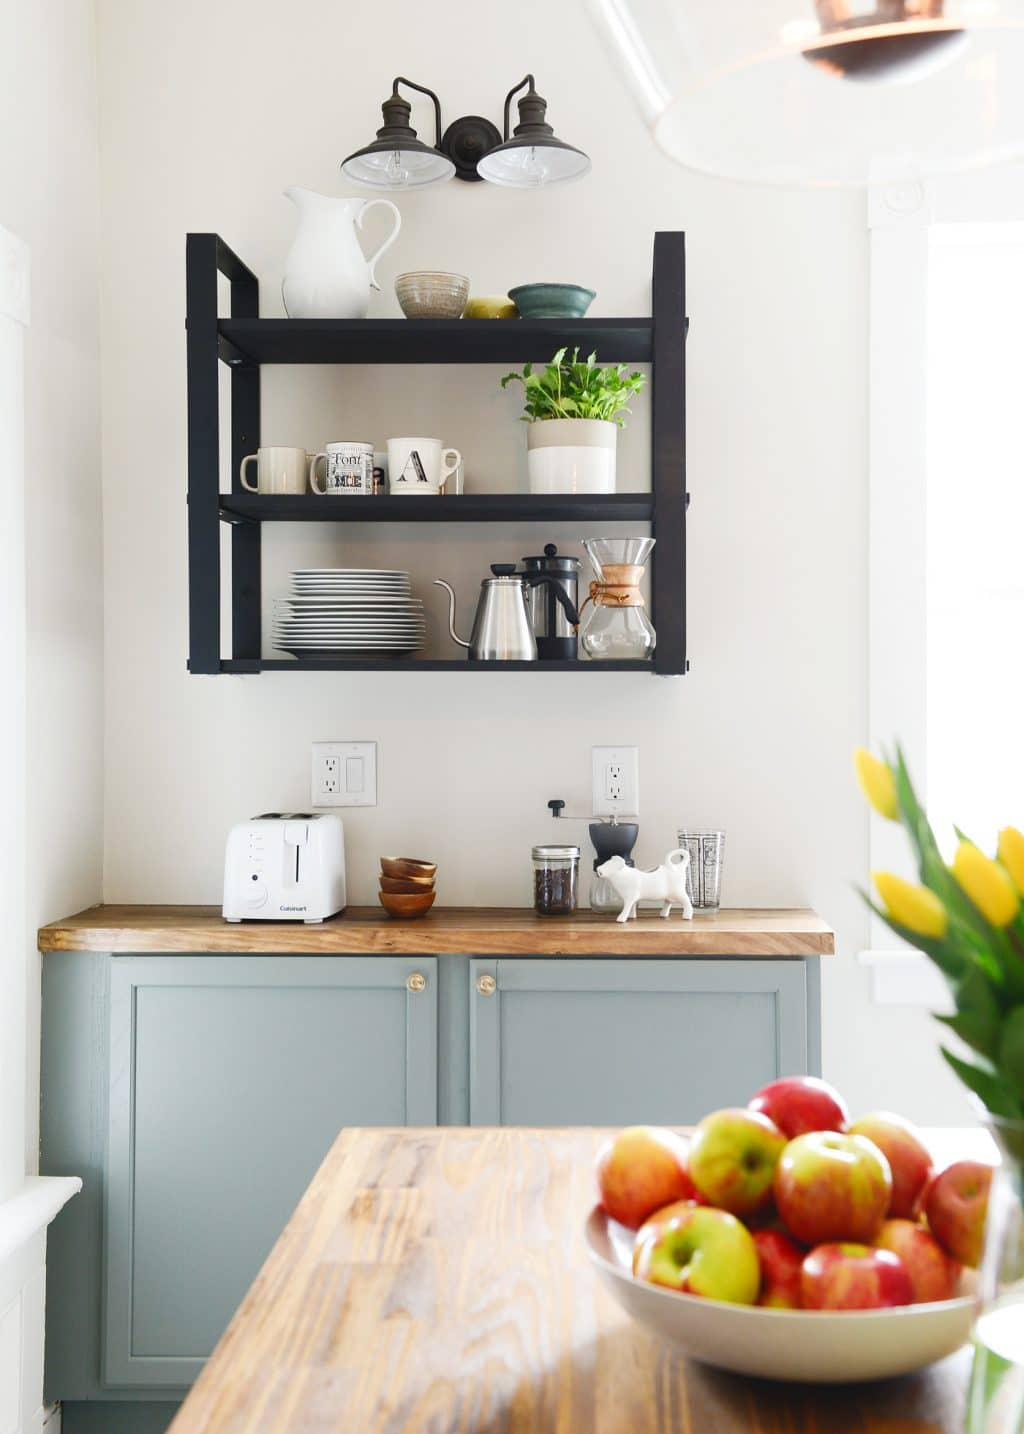 100 year old home gets a 3 day kitchen makeover for less than 5k chris loves julia - Lowes kitchen shelving ...